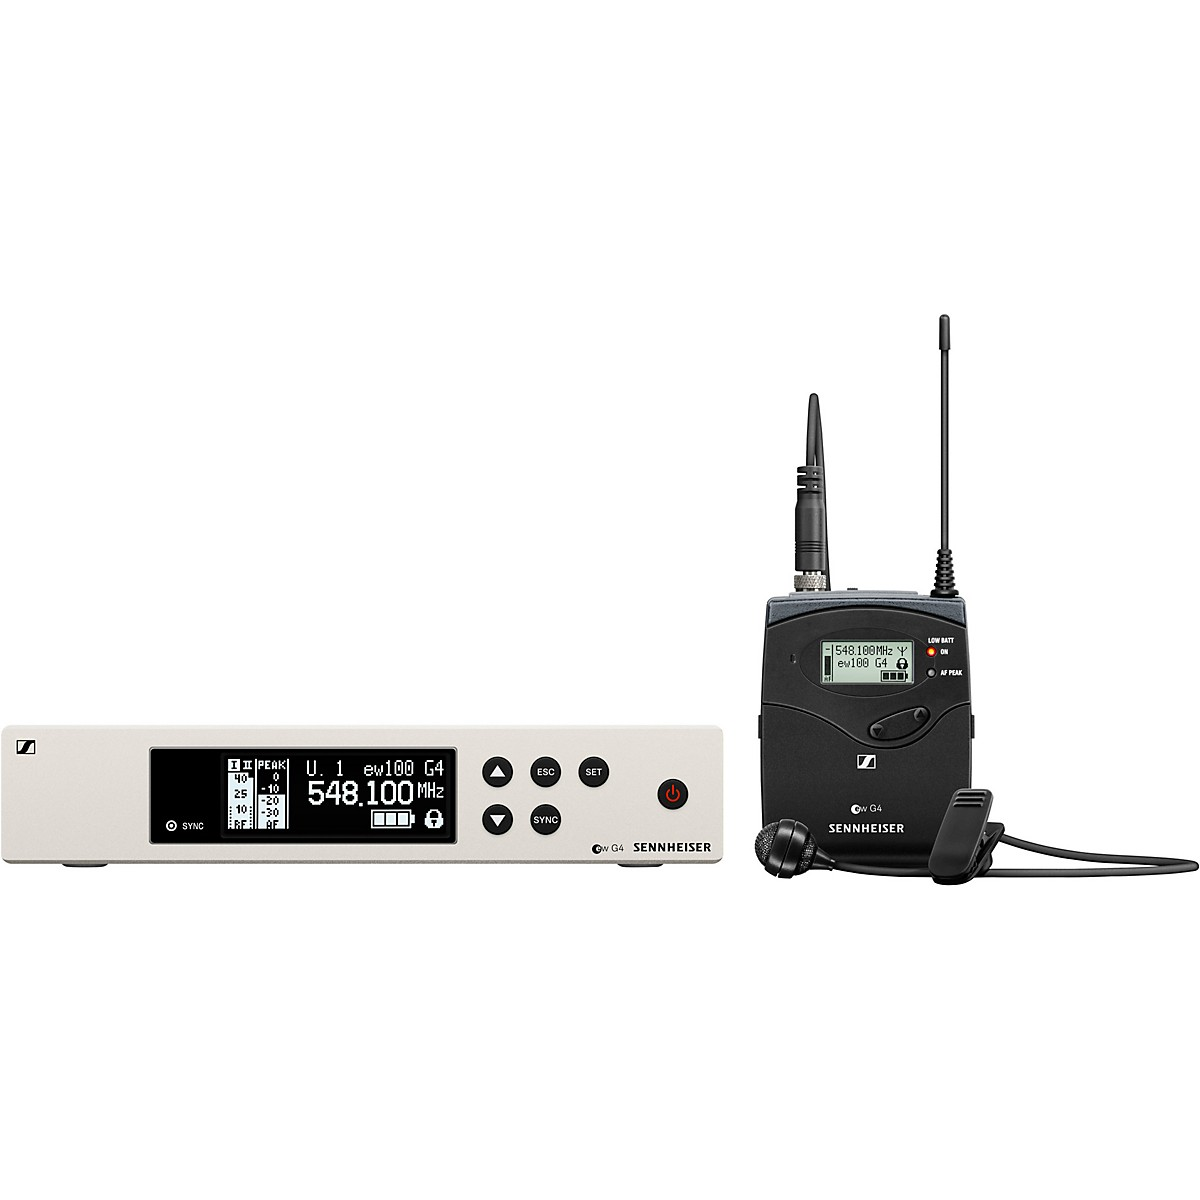 Sennheiser ew 100 G4 Lavalier Wireless System with ME2 Omnidirectional Lavalier Microphone